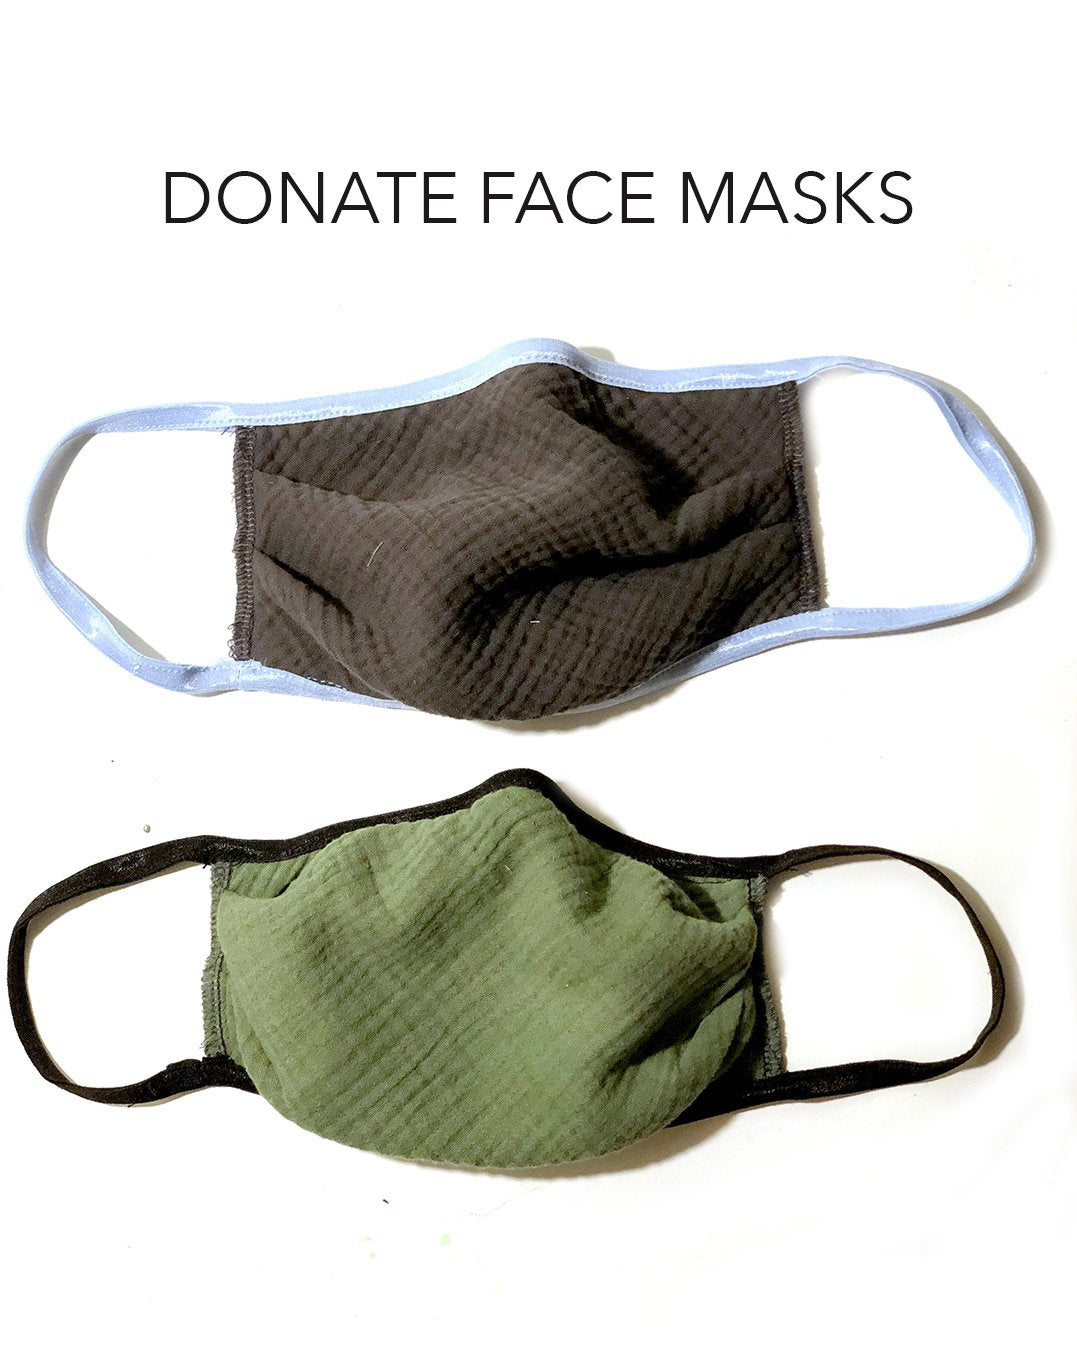 Give Double Fabric Face Masks to Frontline workers,face mask, The House of Woo- Woo